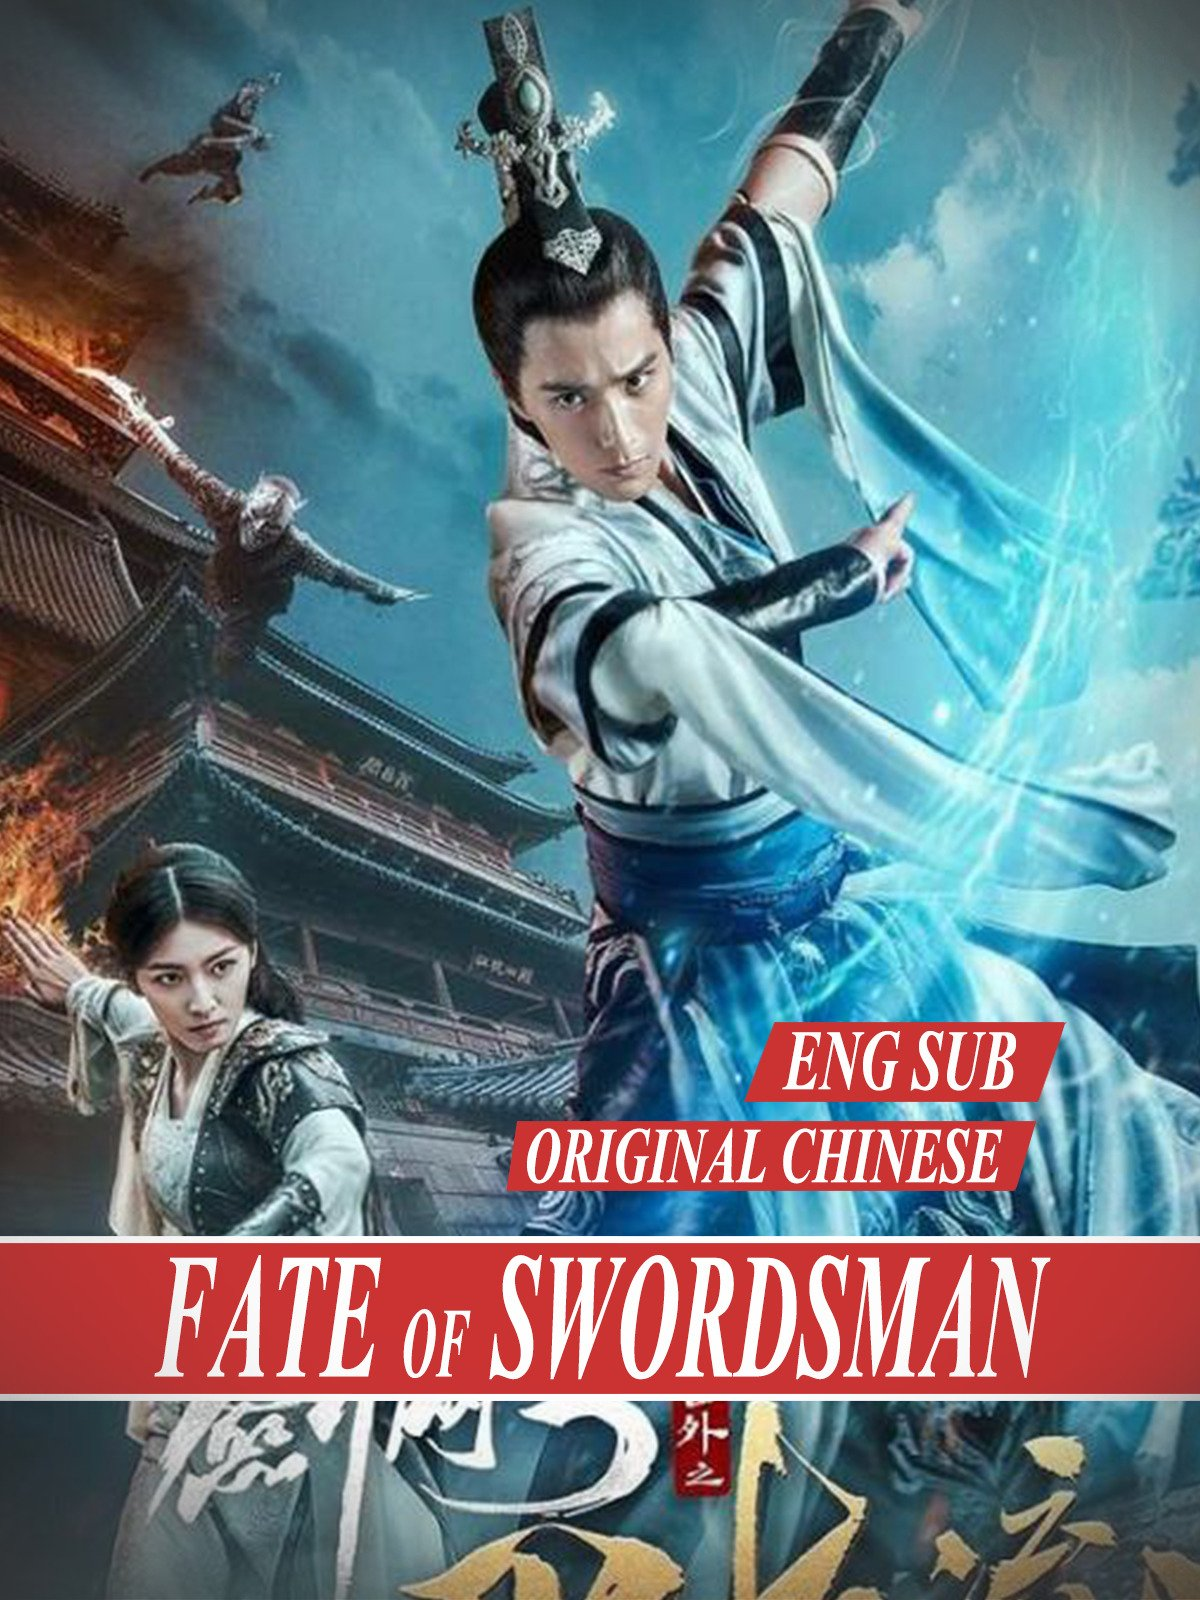 Fаte Of Swоrdsman [Eng Sub] original Chinese